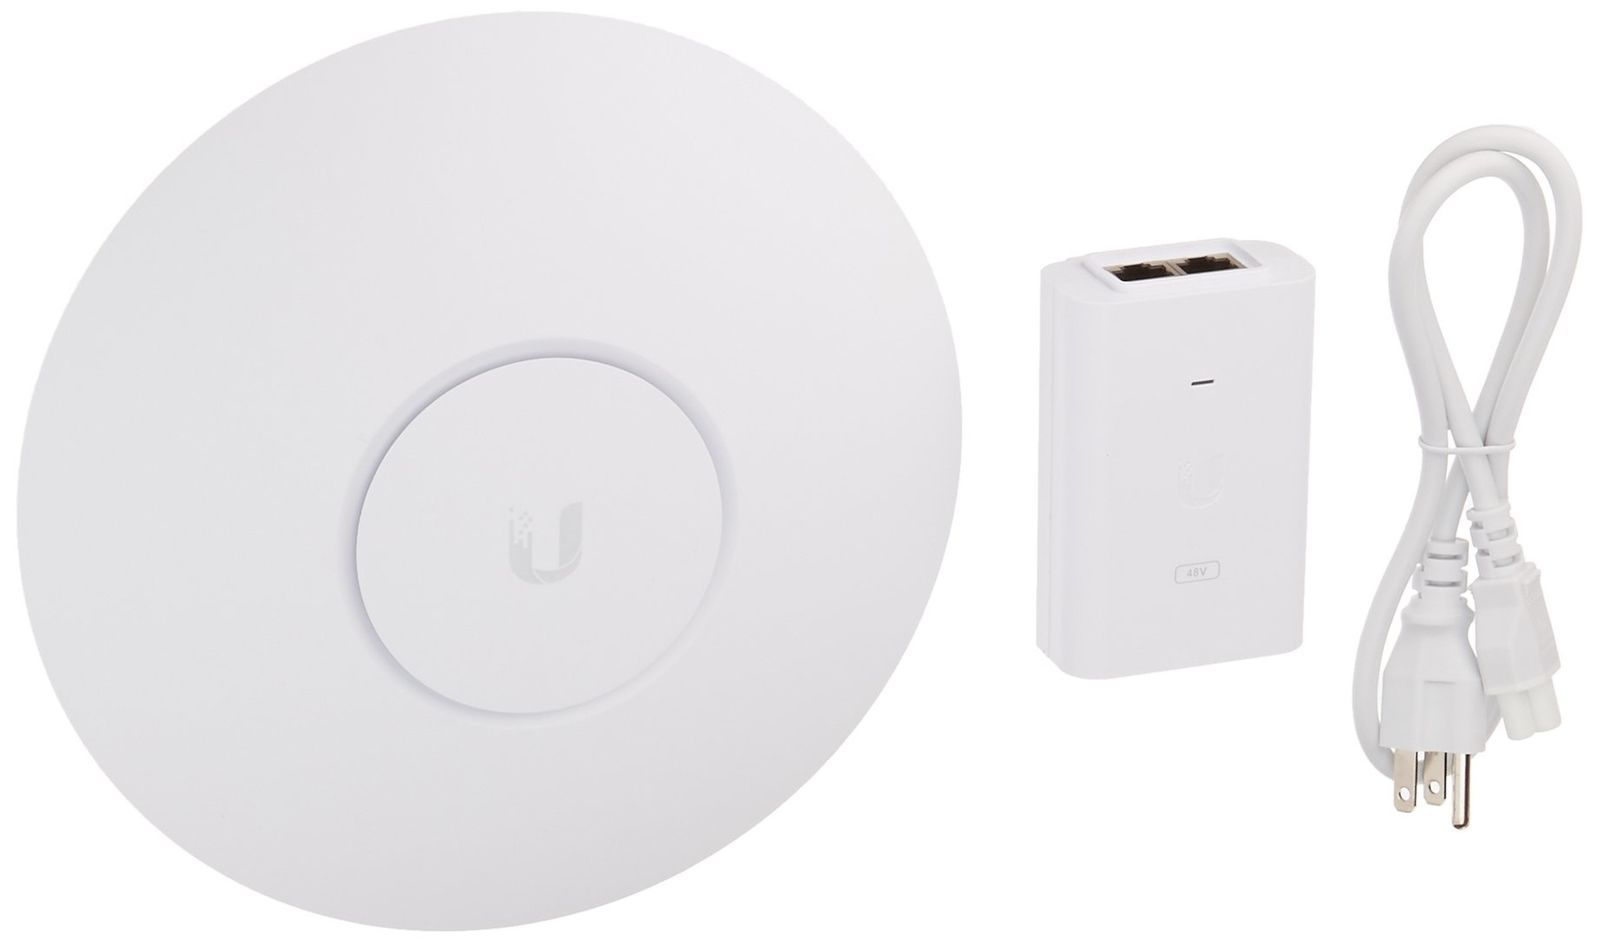 Ubiquiti UAP-AC-HD Unifi Access Point